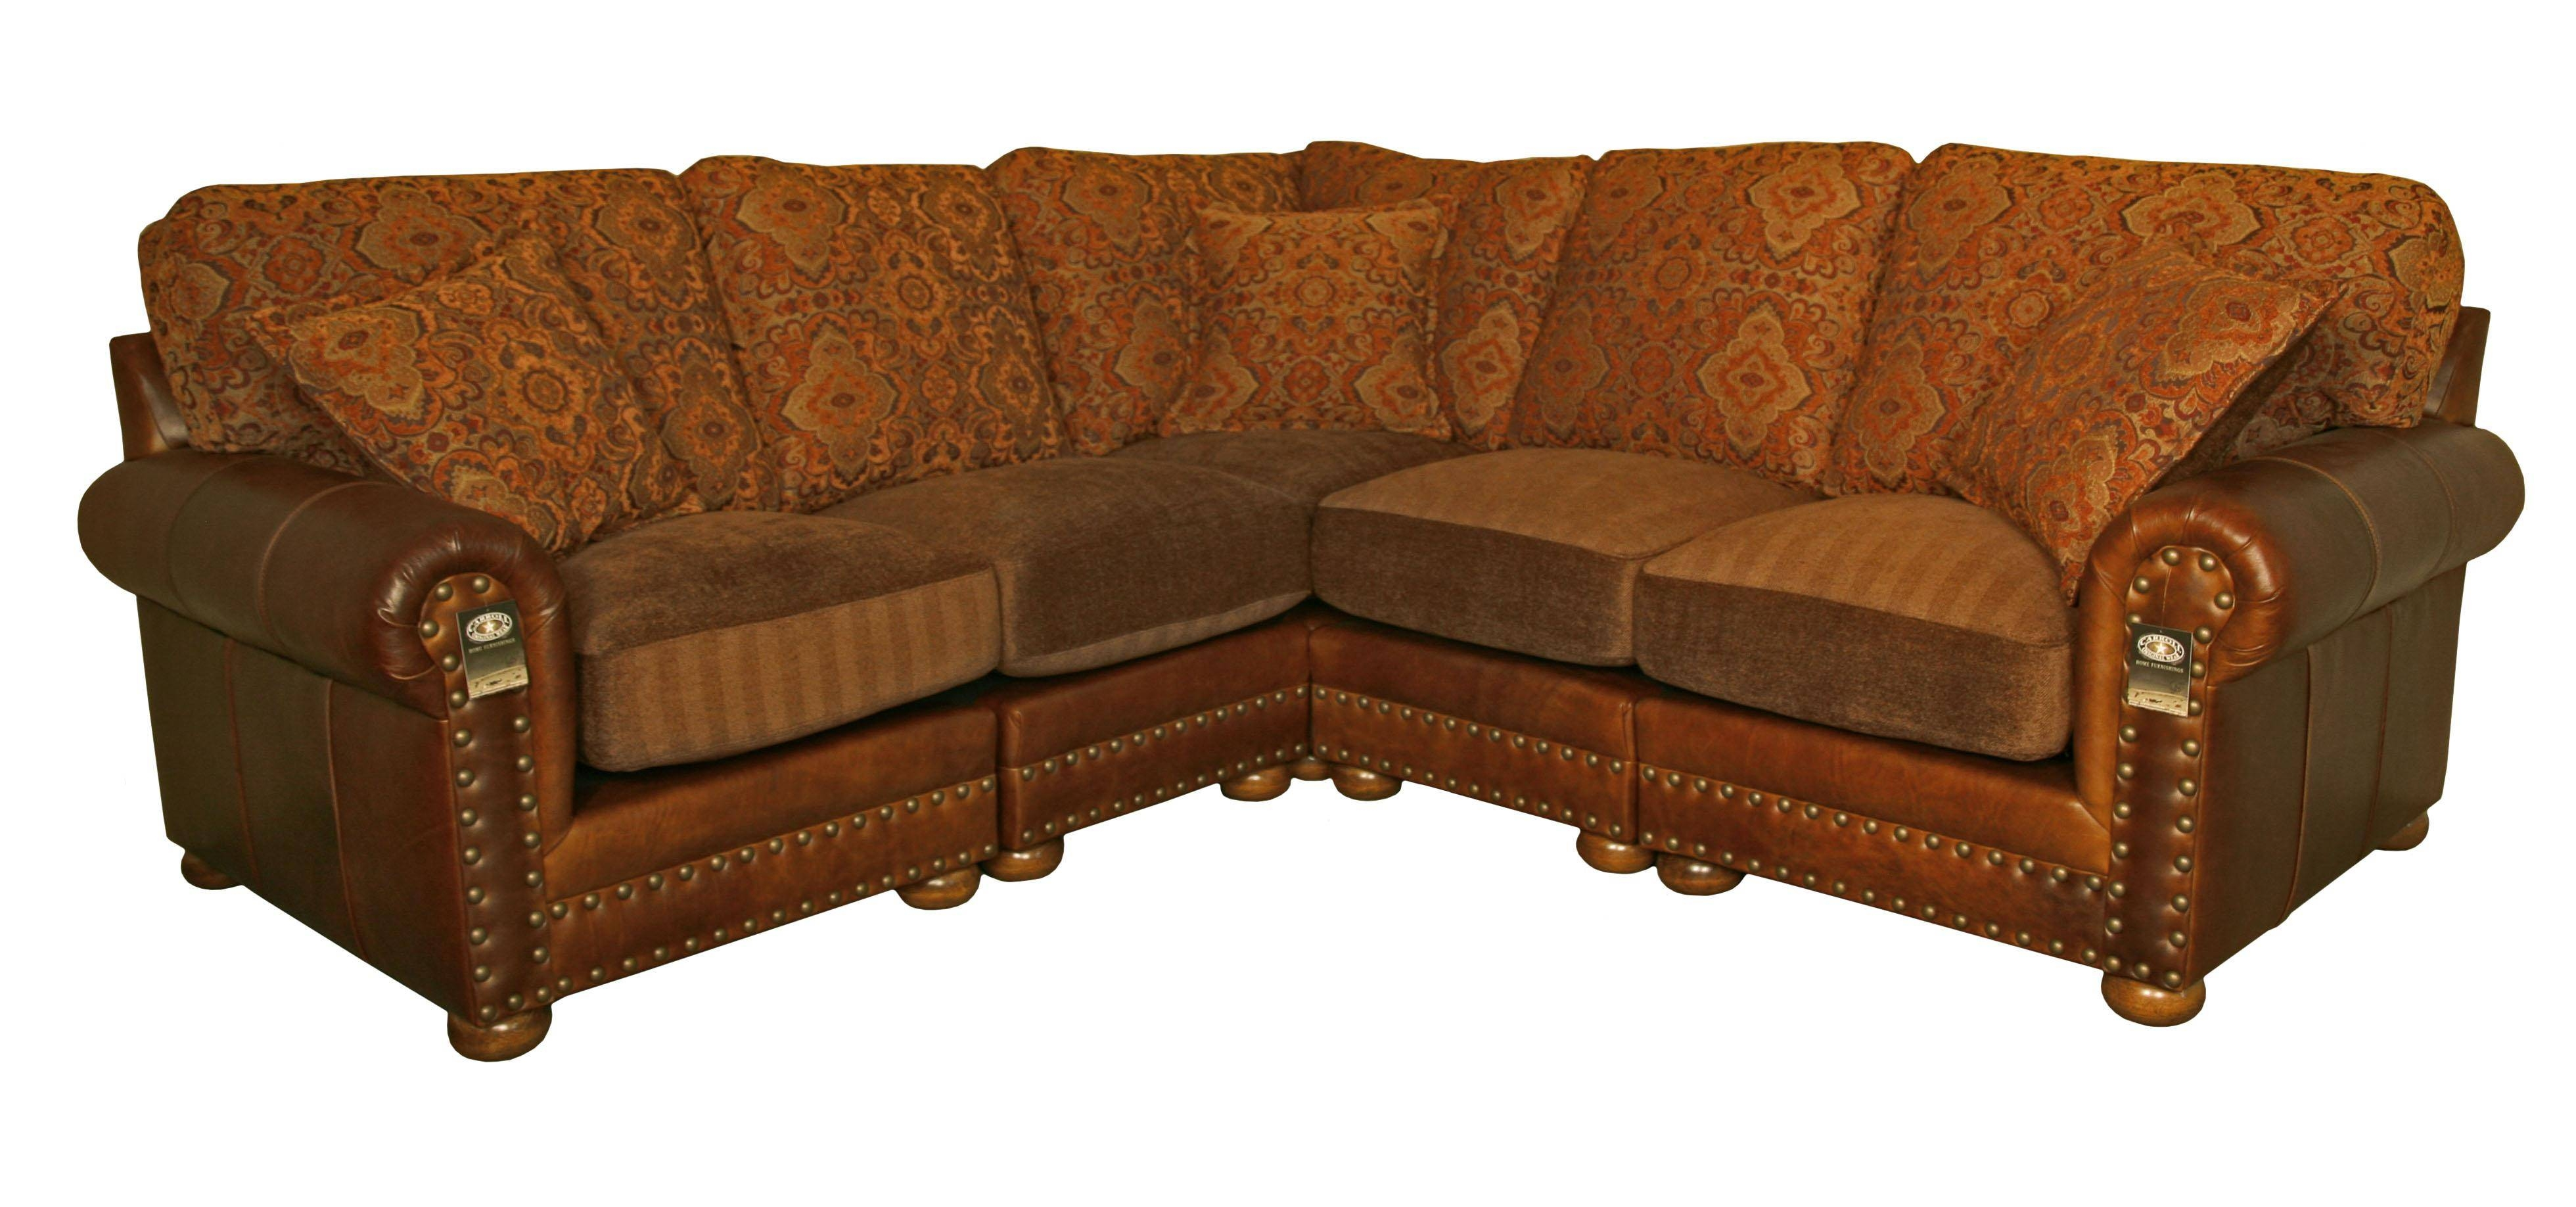 Sofas Center : Leather Fabric Sofas Suit Furniture And Sofa In L with Leather and Cloth Sofa (Image 25 of 25)